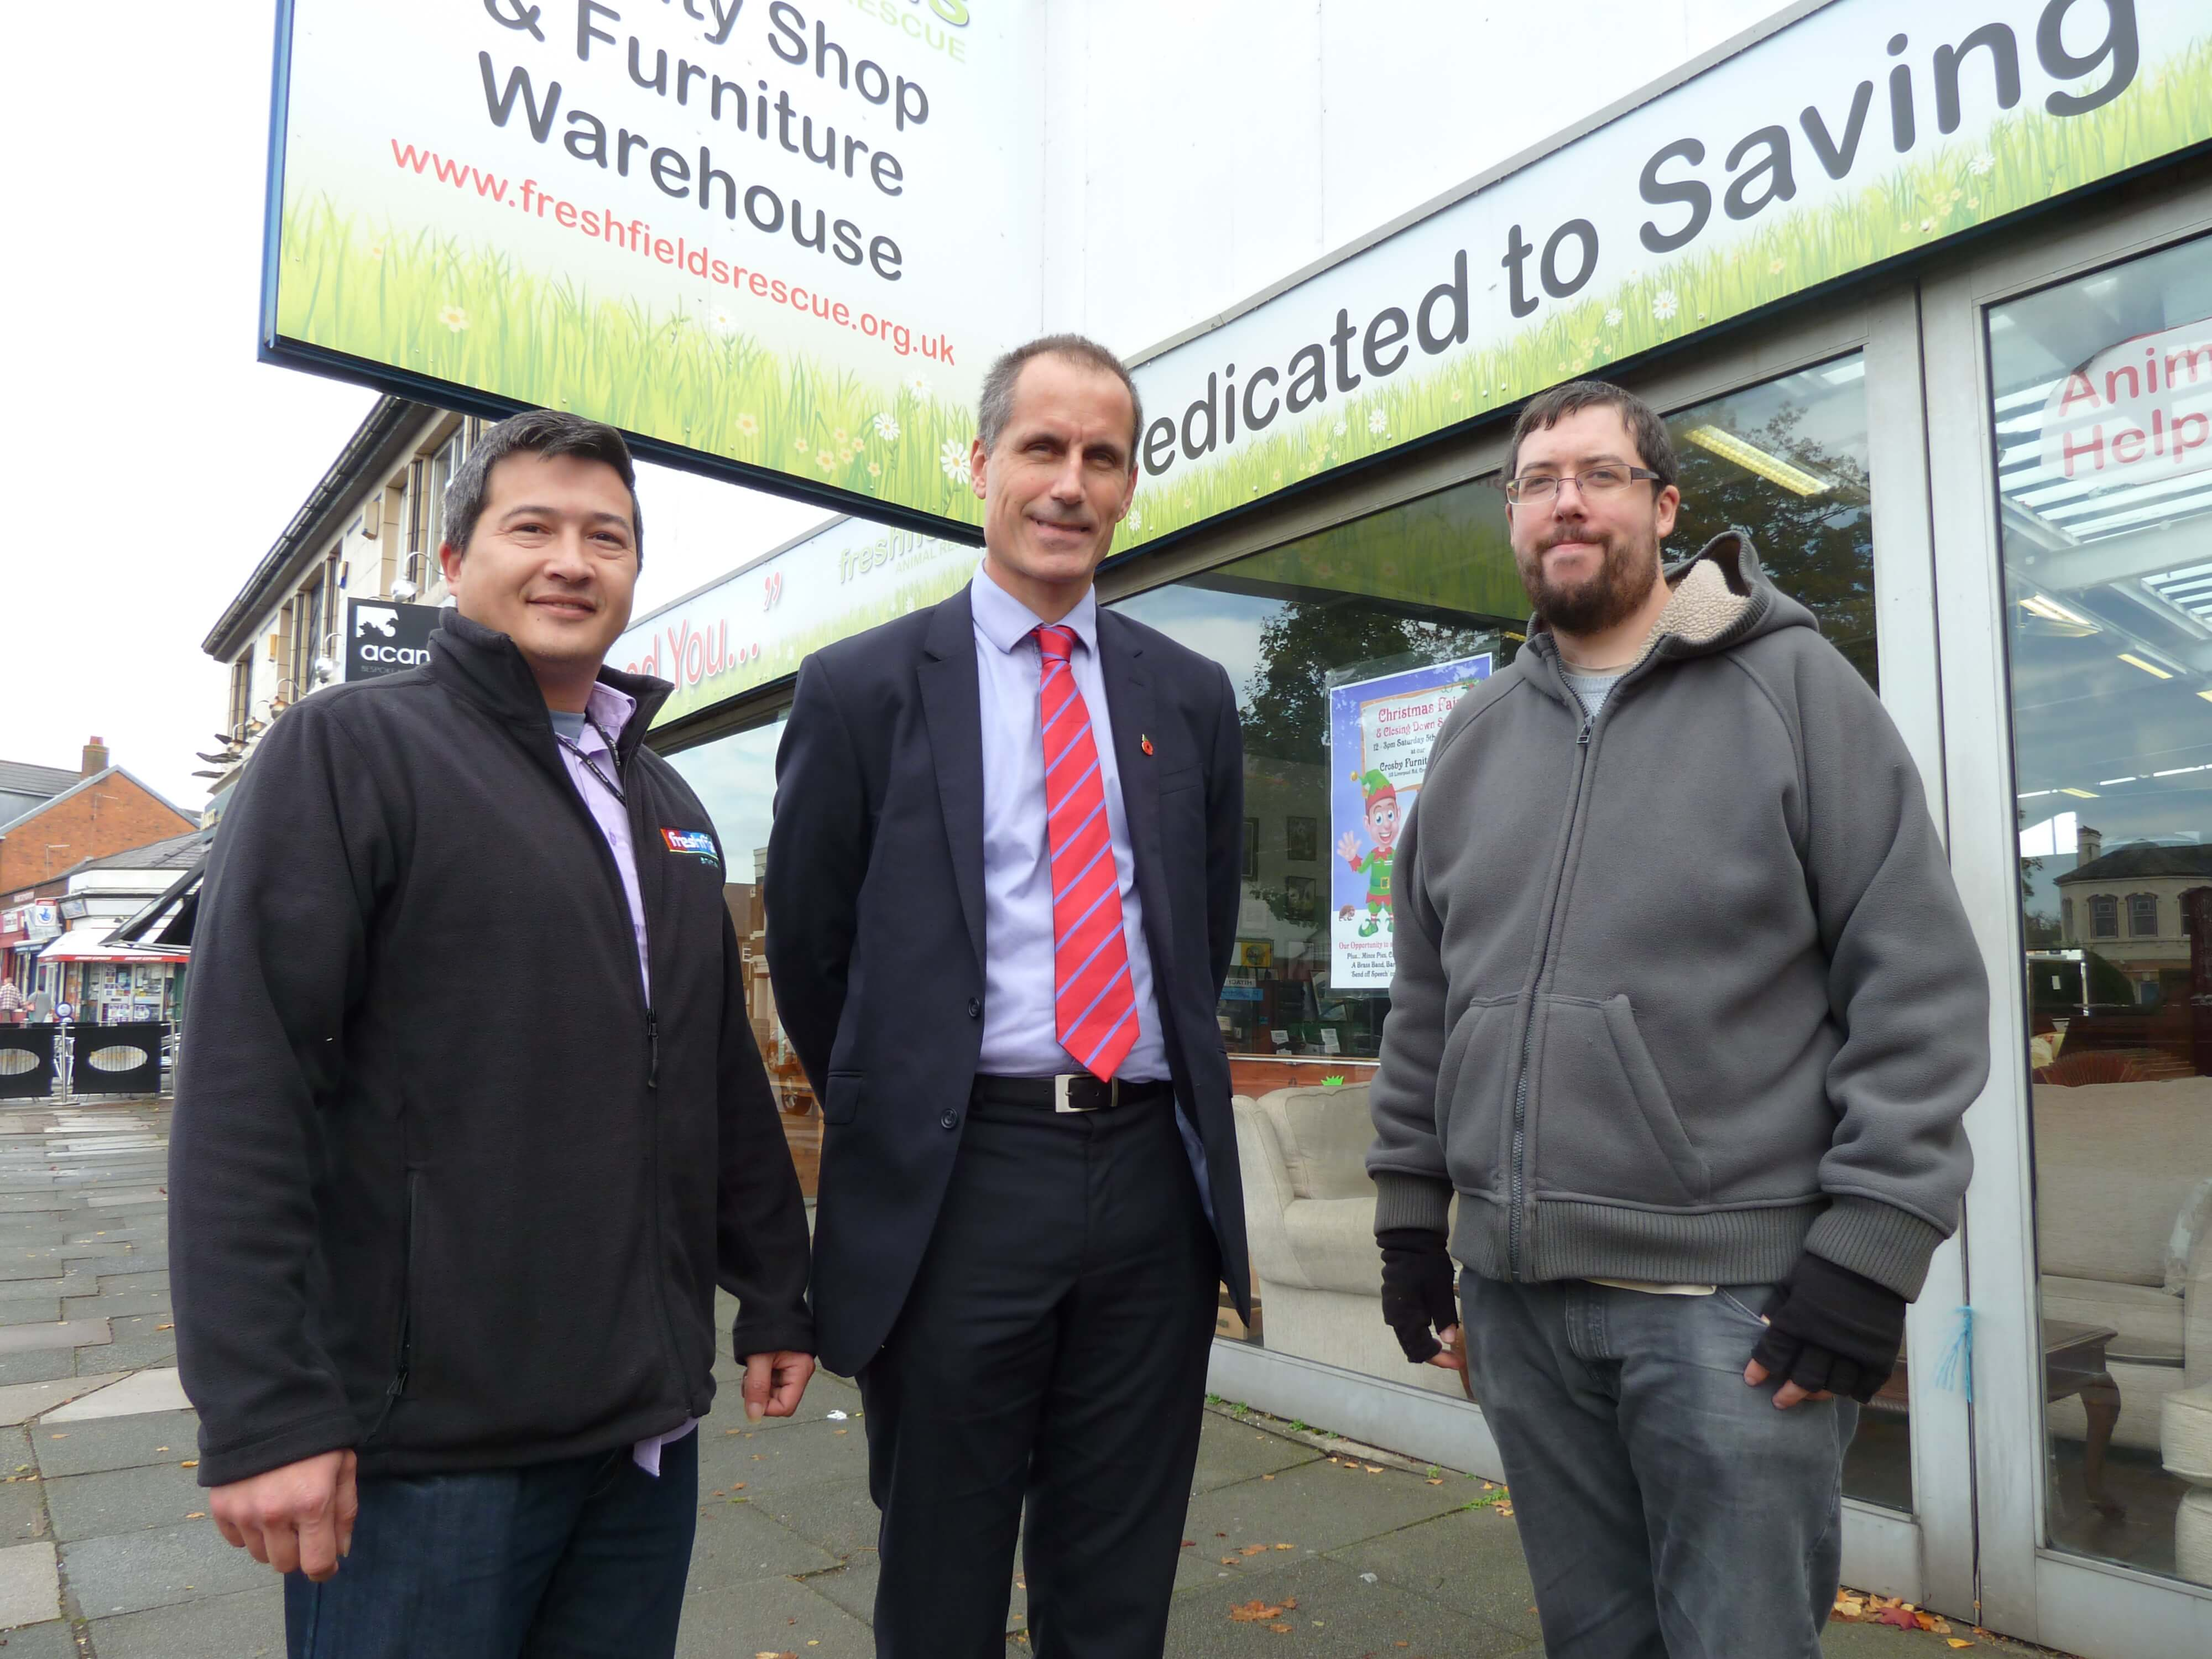 Freshfields Animal Rescue store manager Richard lee and volunteer Joe Smith with MP Bill Esterson.